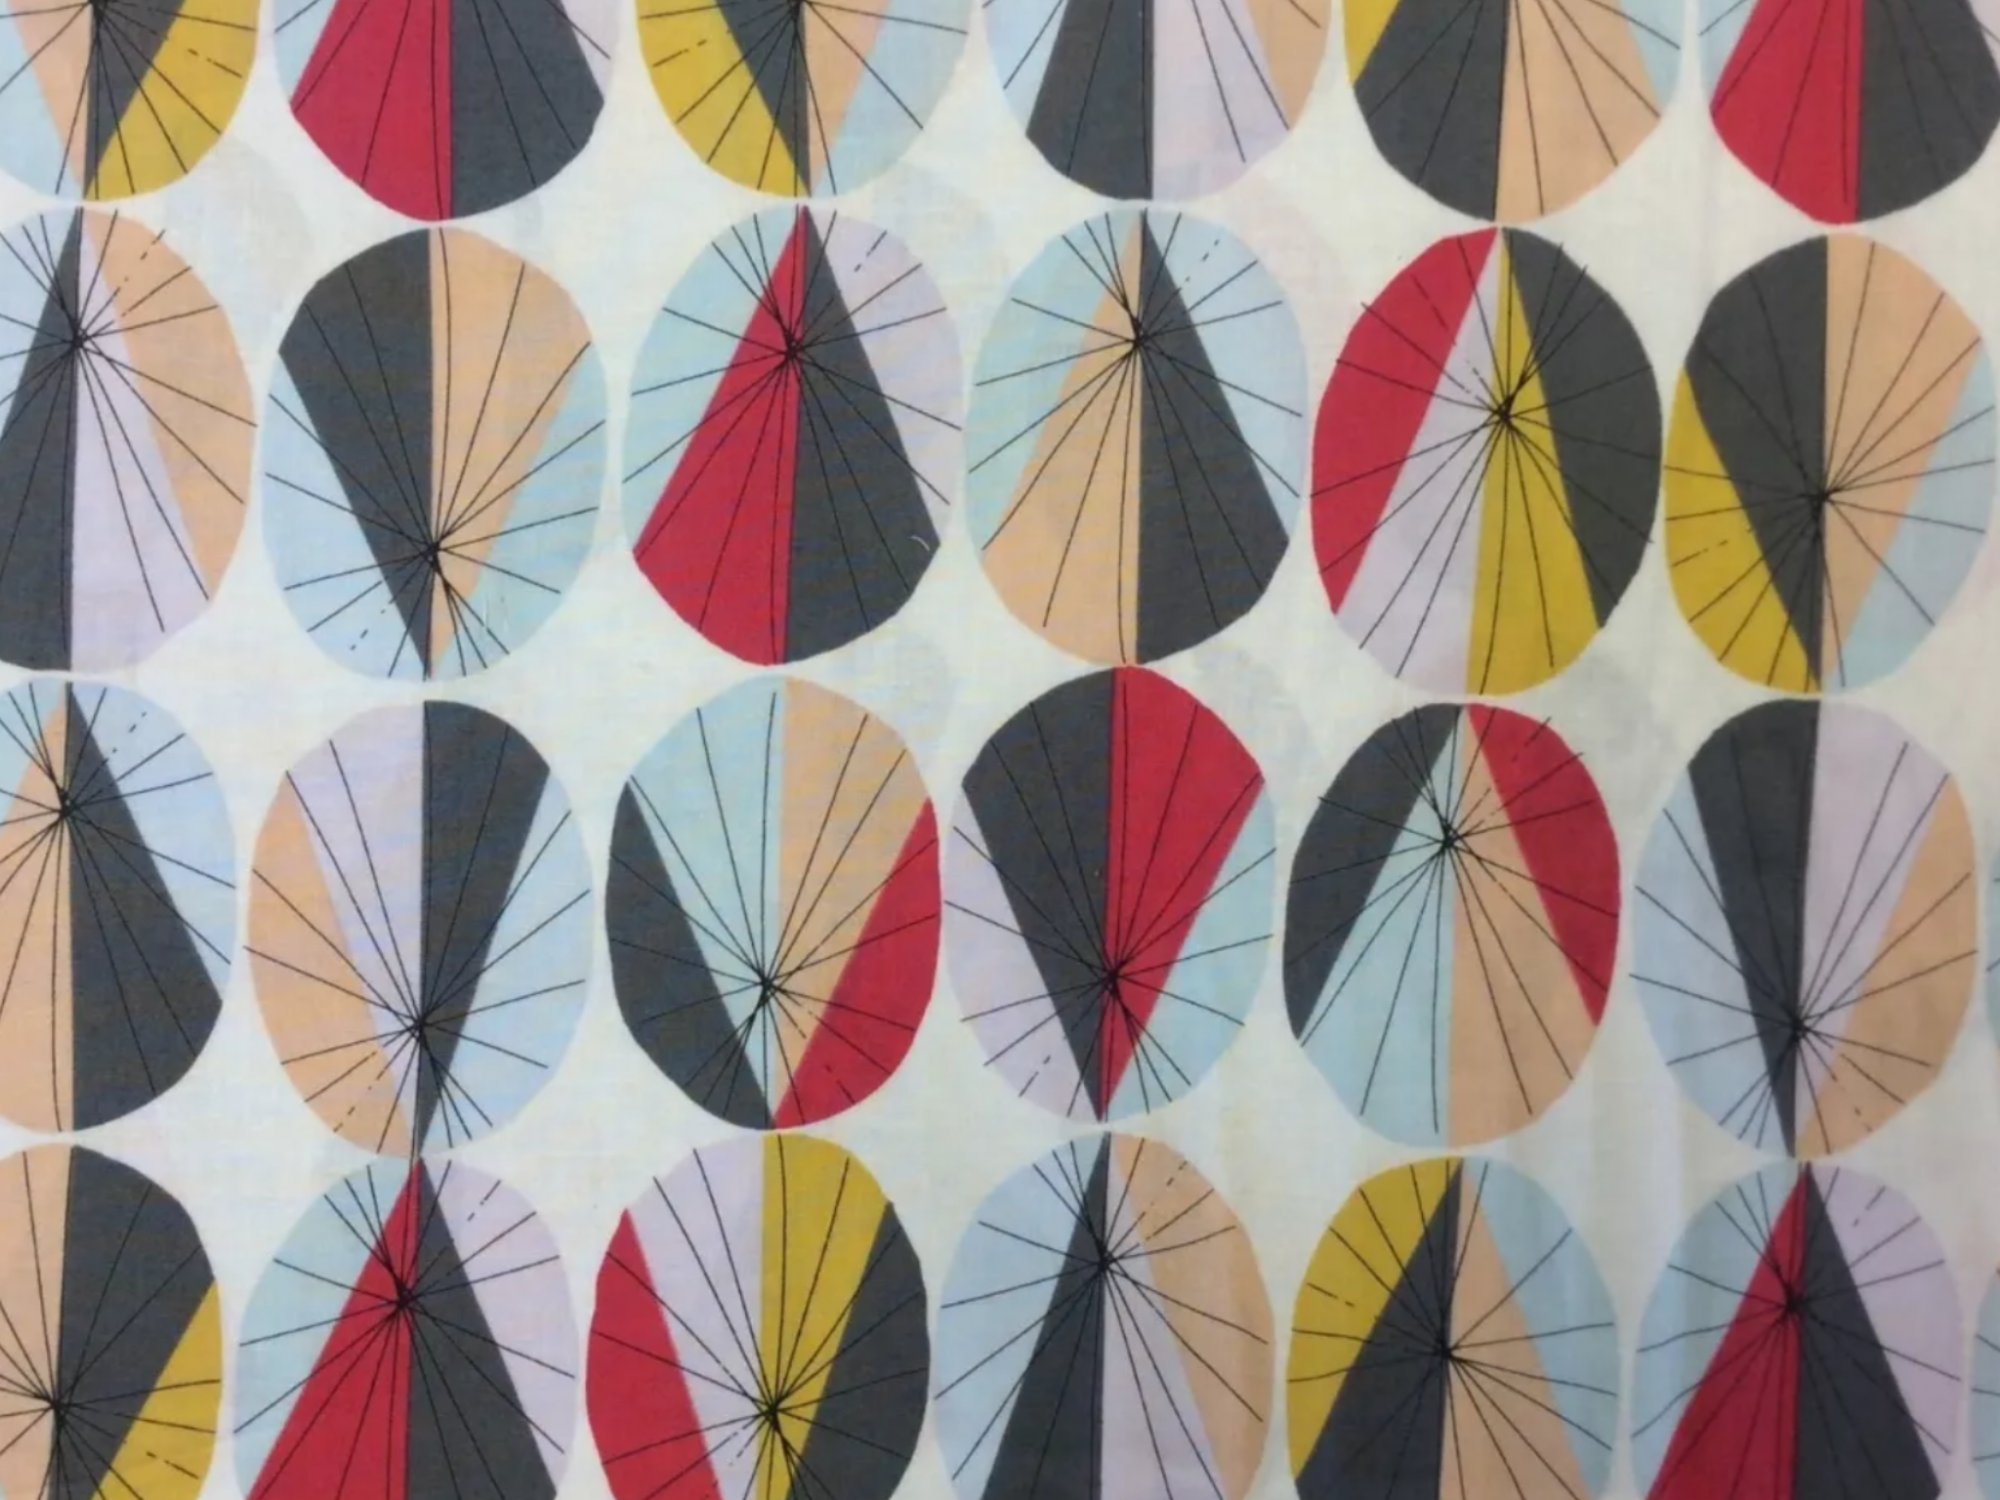 Jane Makower United Kingdom Retro Sputnik England Retro Geometric UK Cotton Quilt Fabric JM10